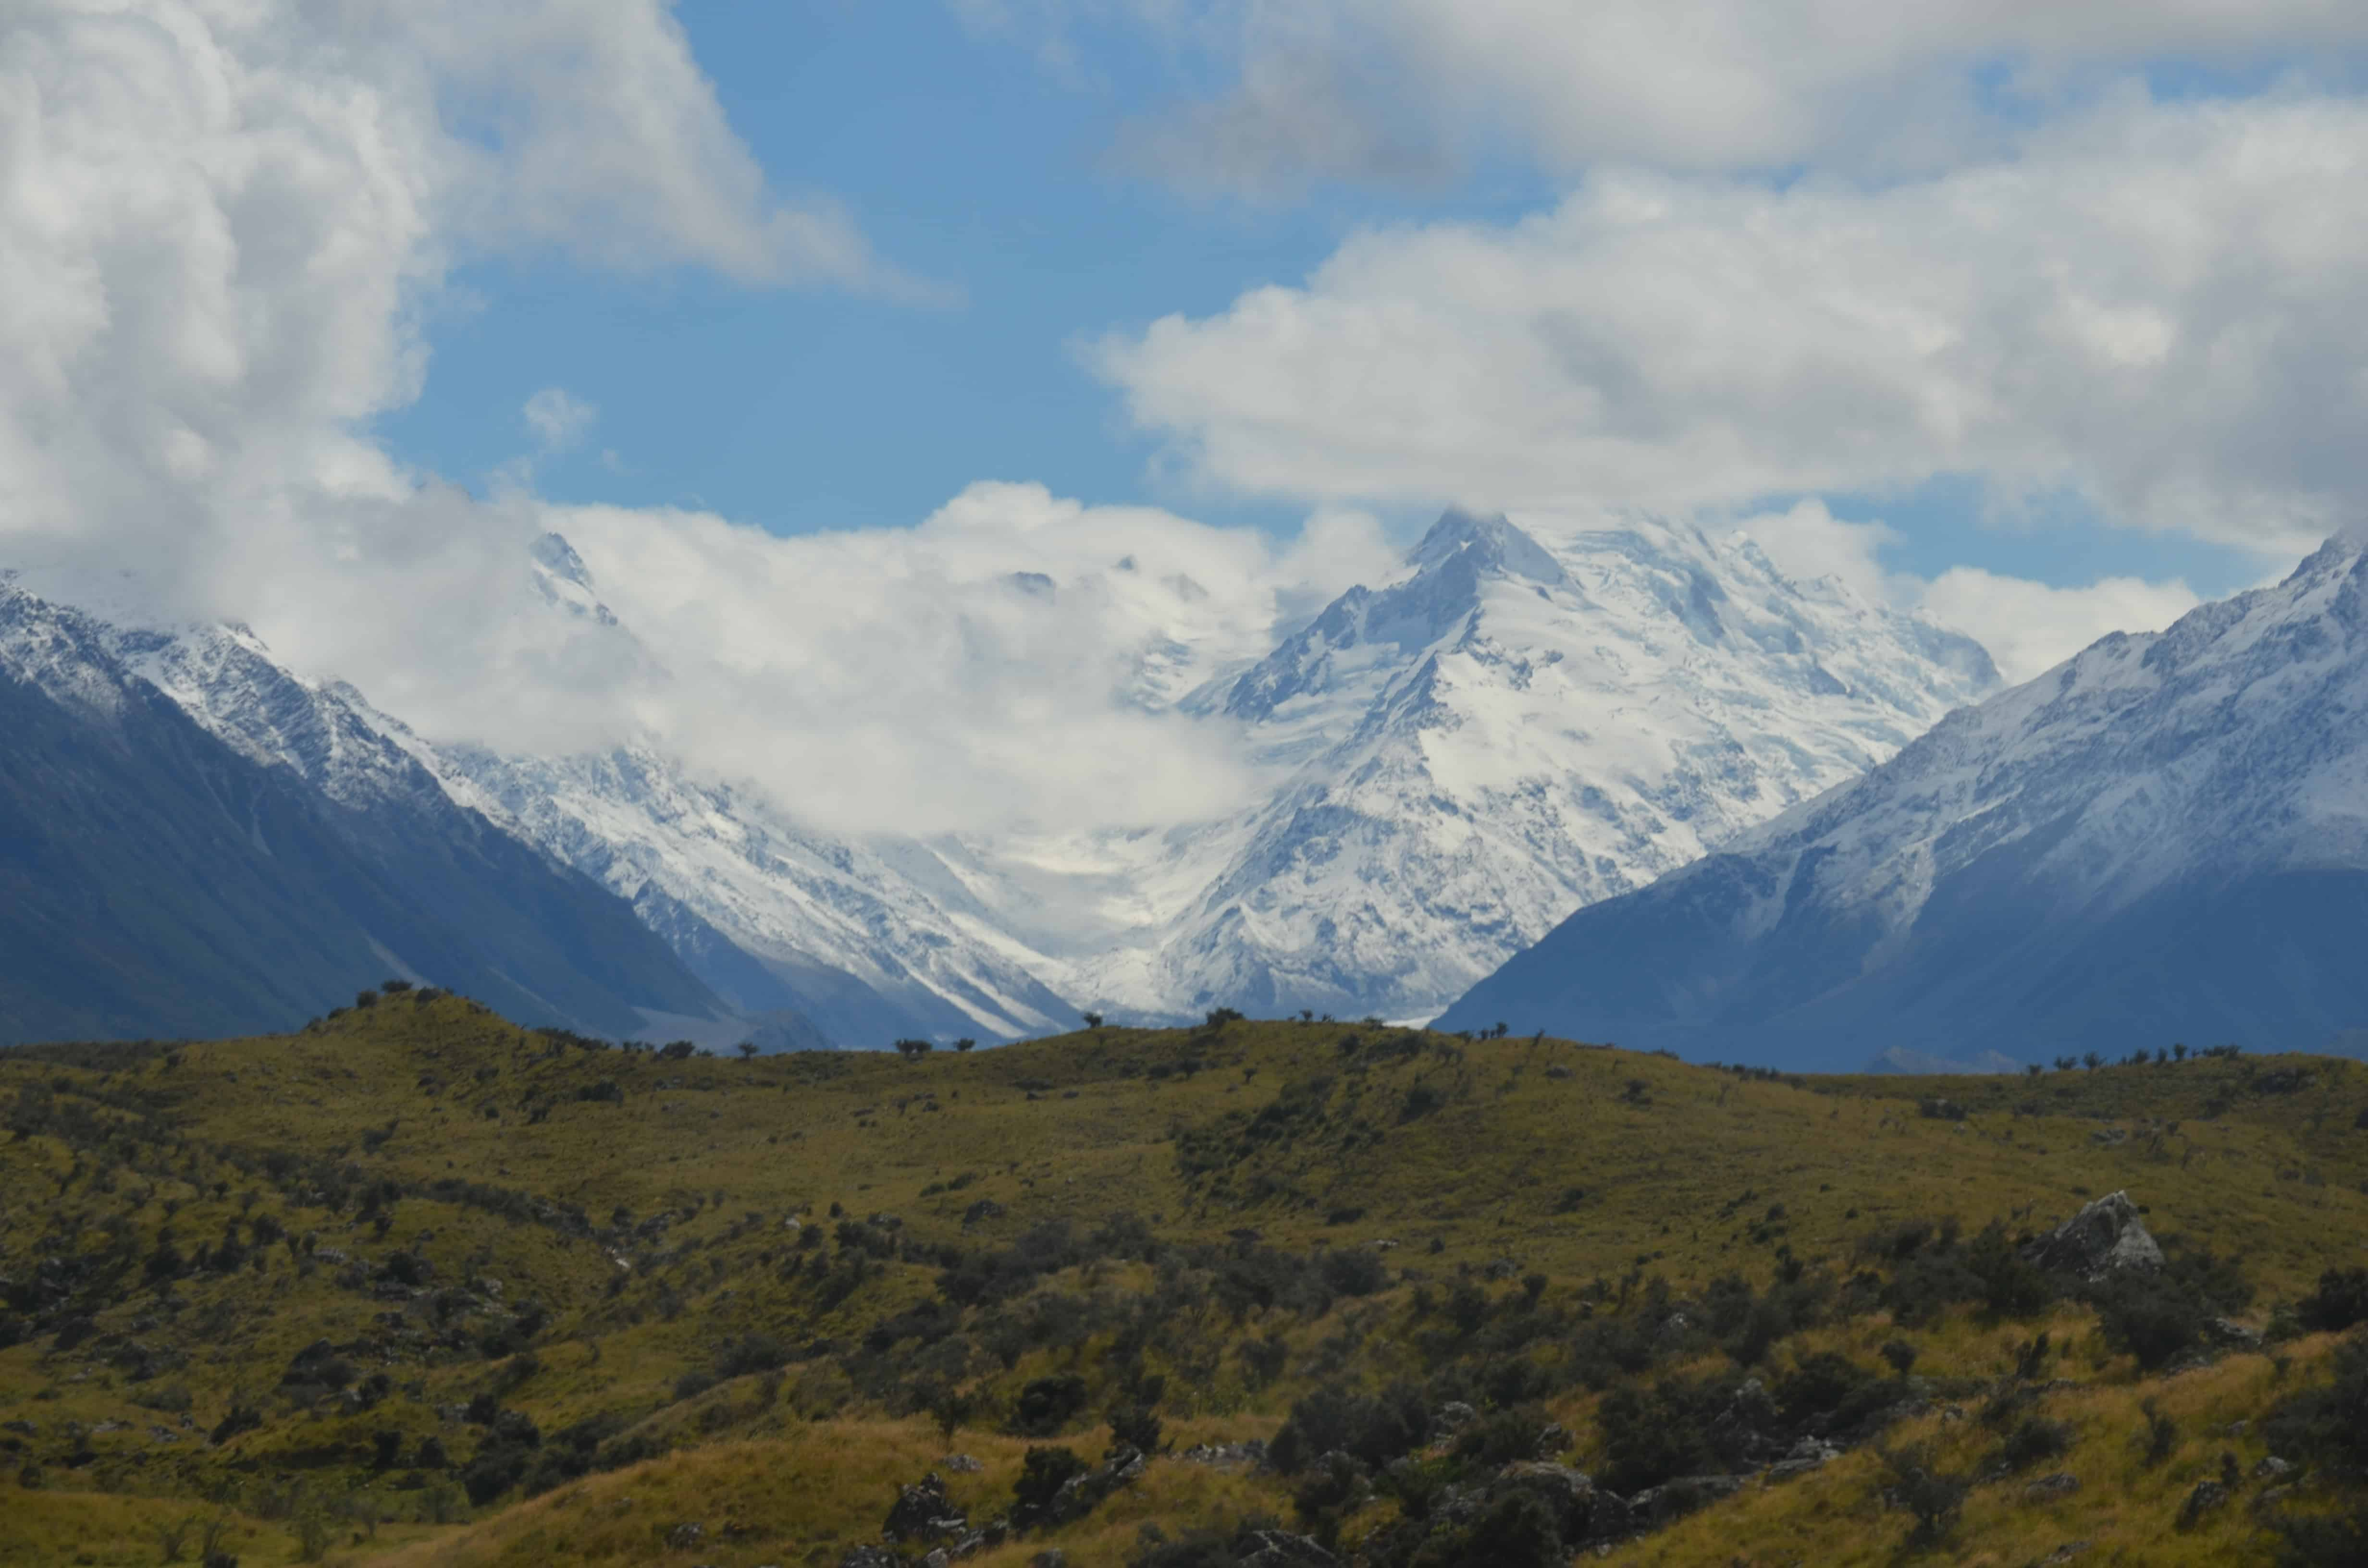 On the way to Mt. Cook